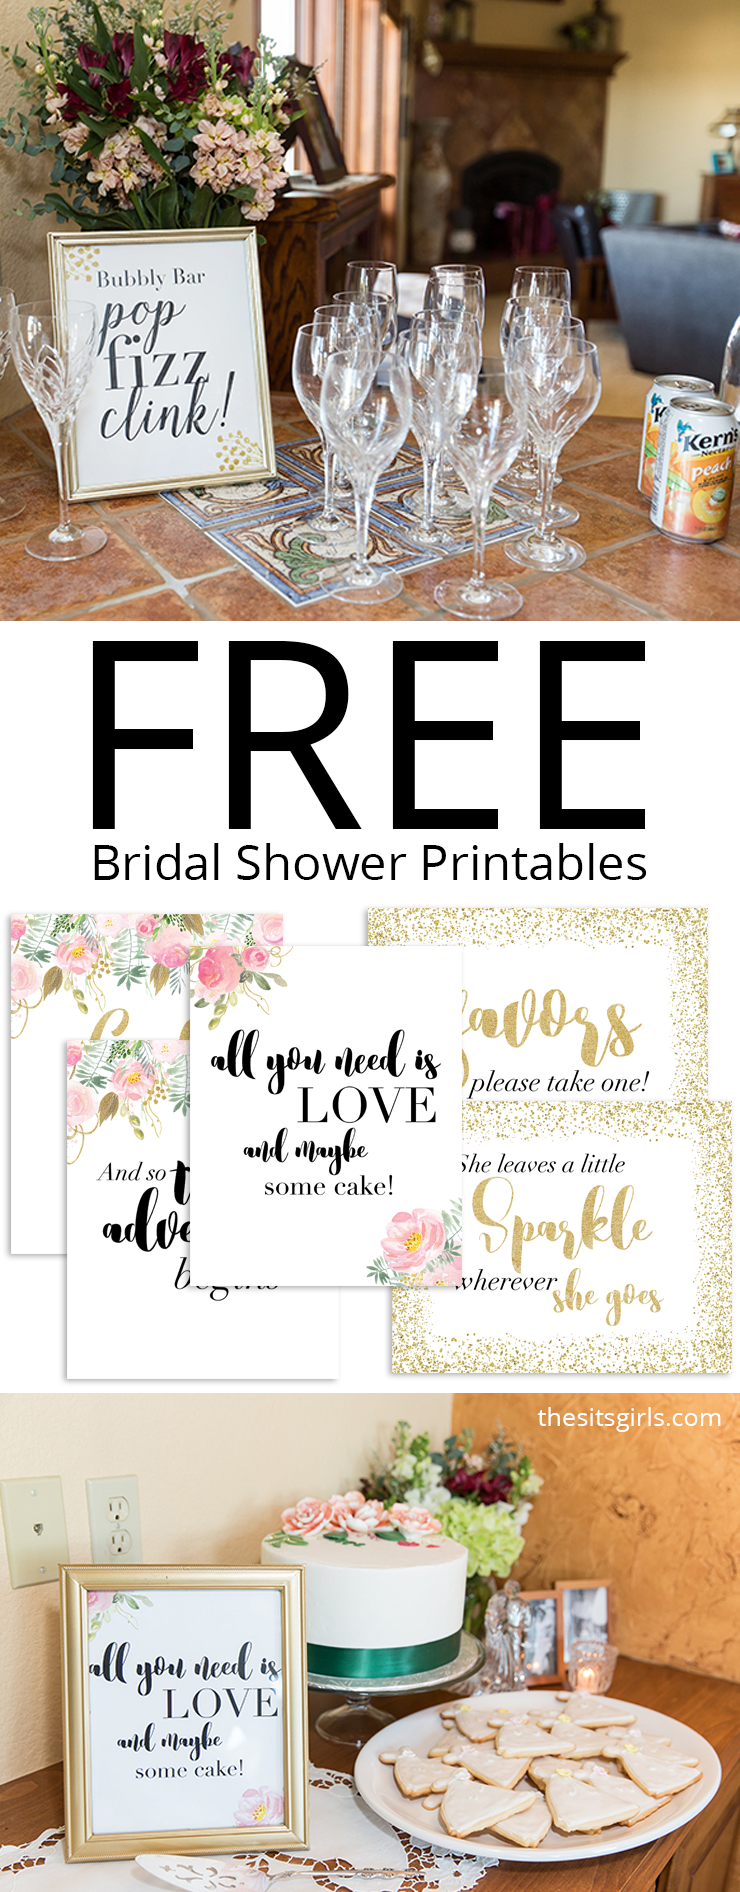 game for bridal shower free%0A Wishes for Bride  u     Groom FREE PRINTABLE   lets party   Pinterest   Free  printable  Bridal showers and Free